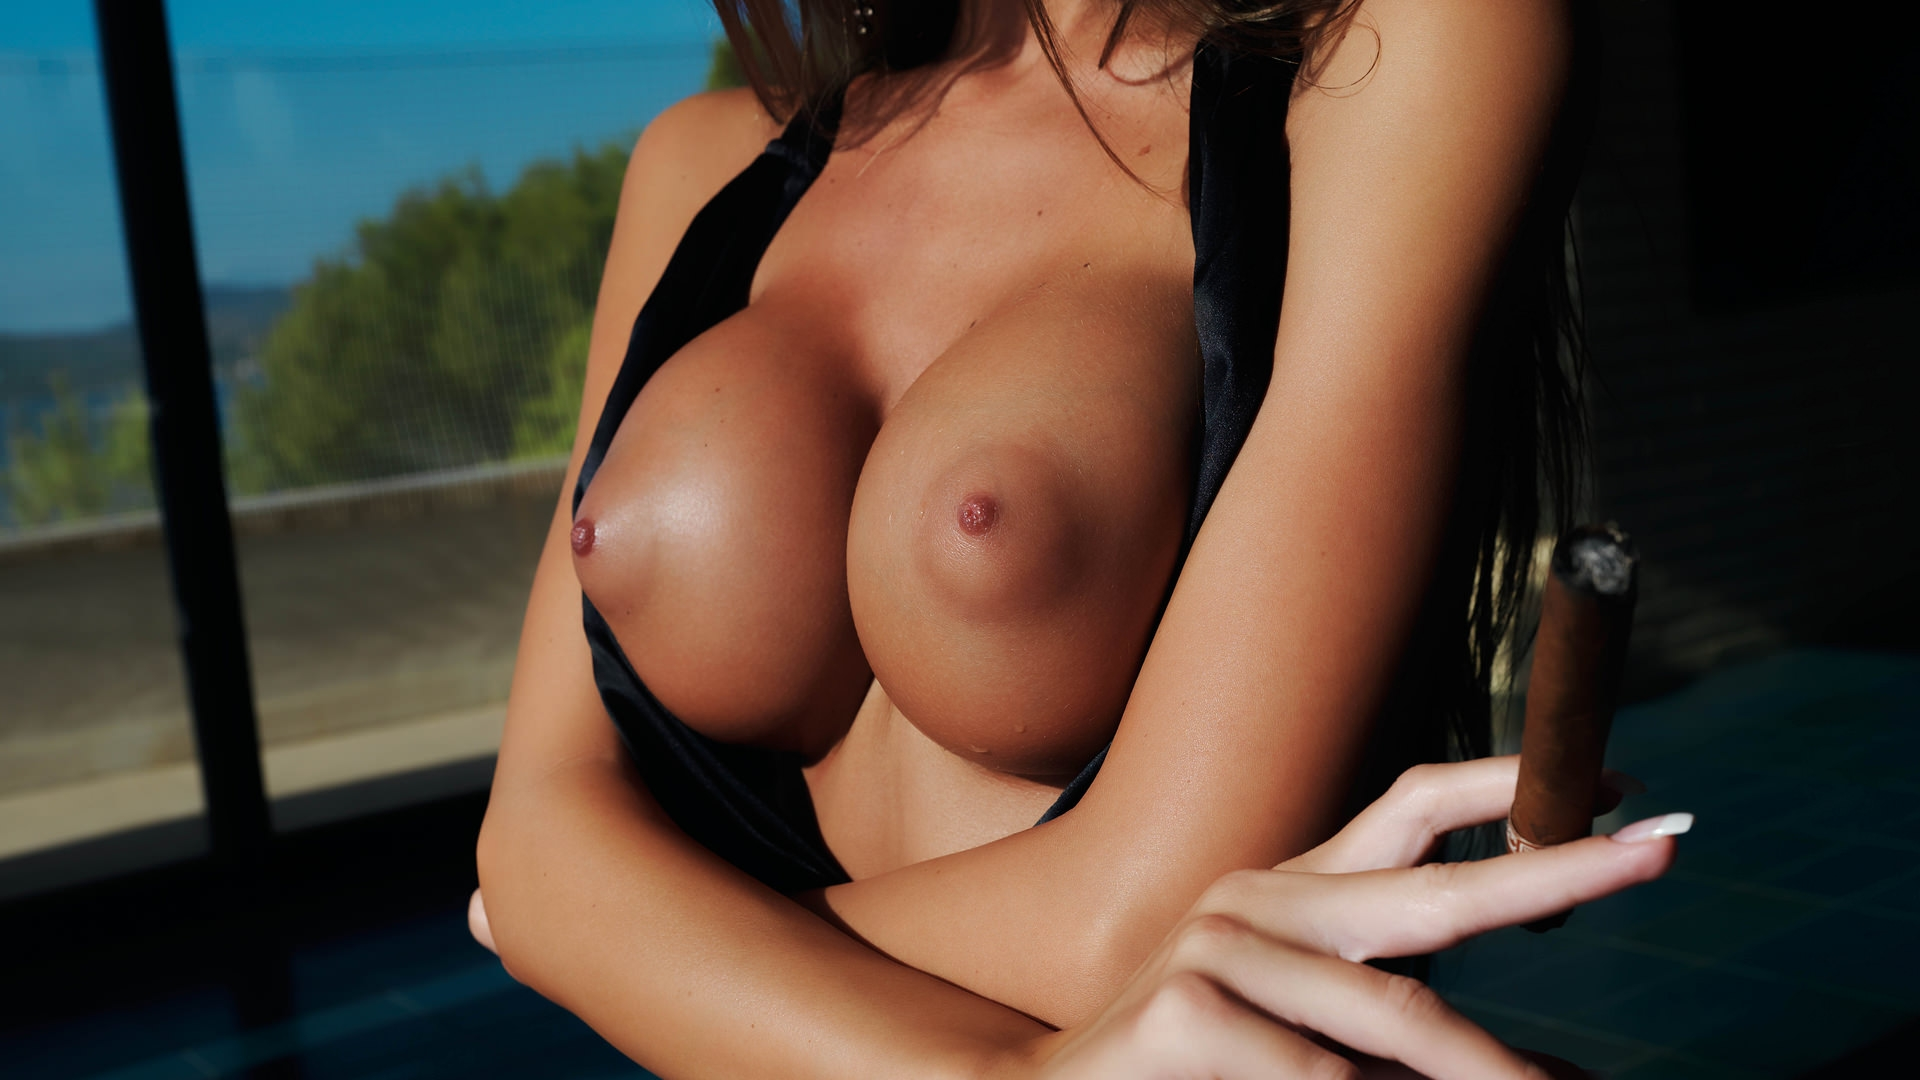 Boobs tits porn photos